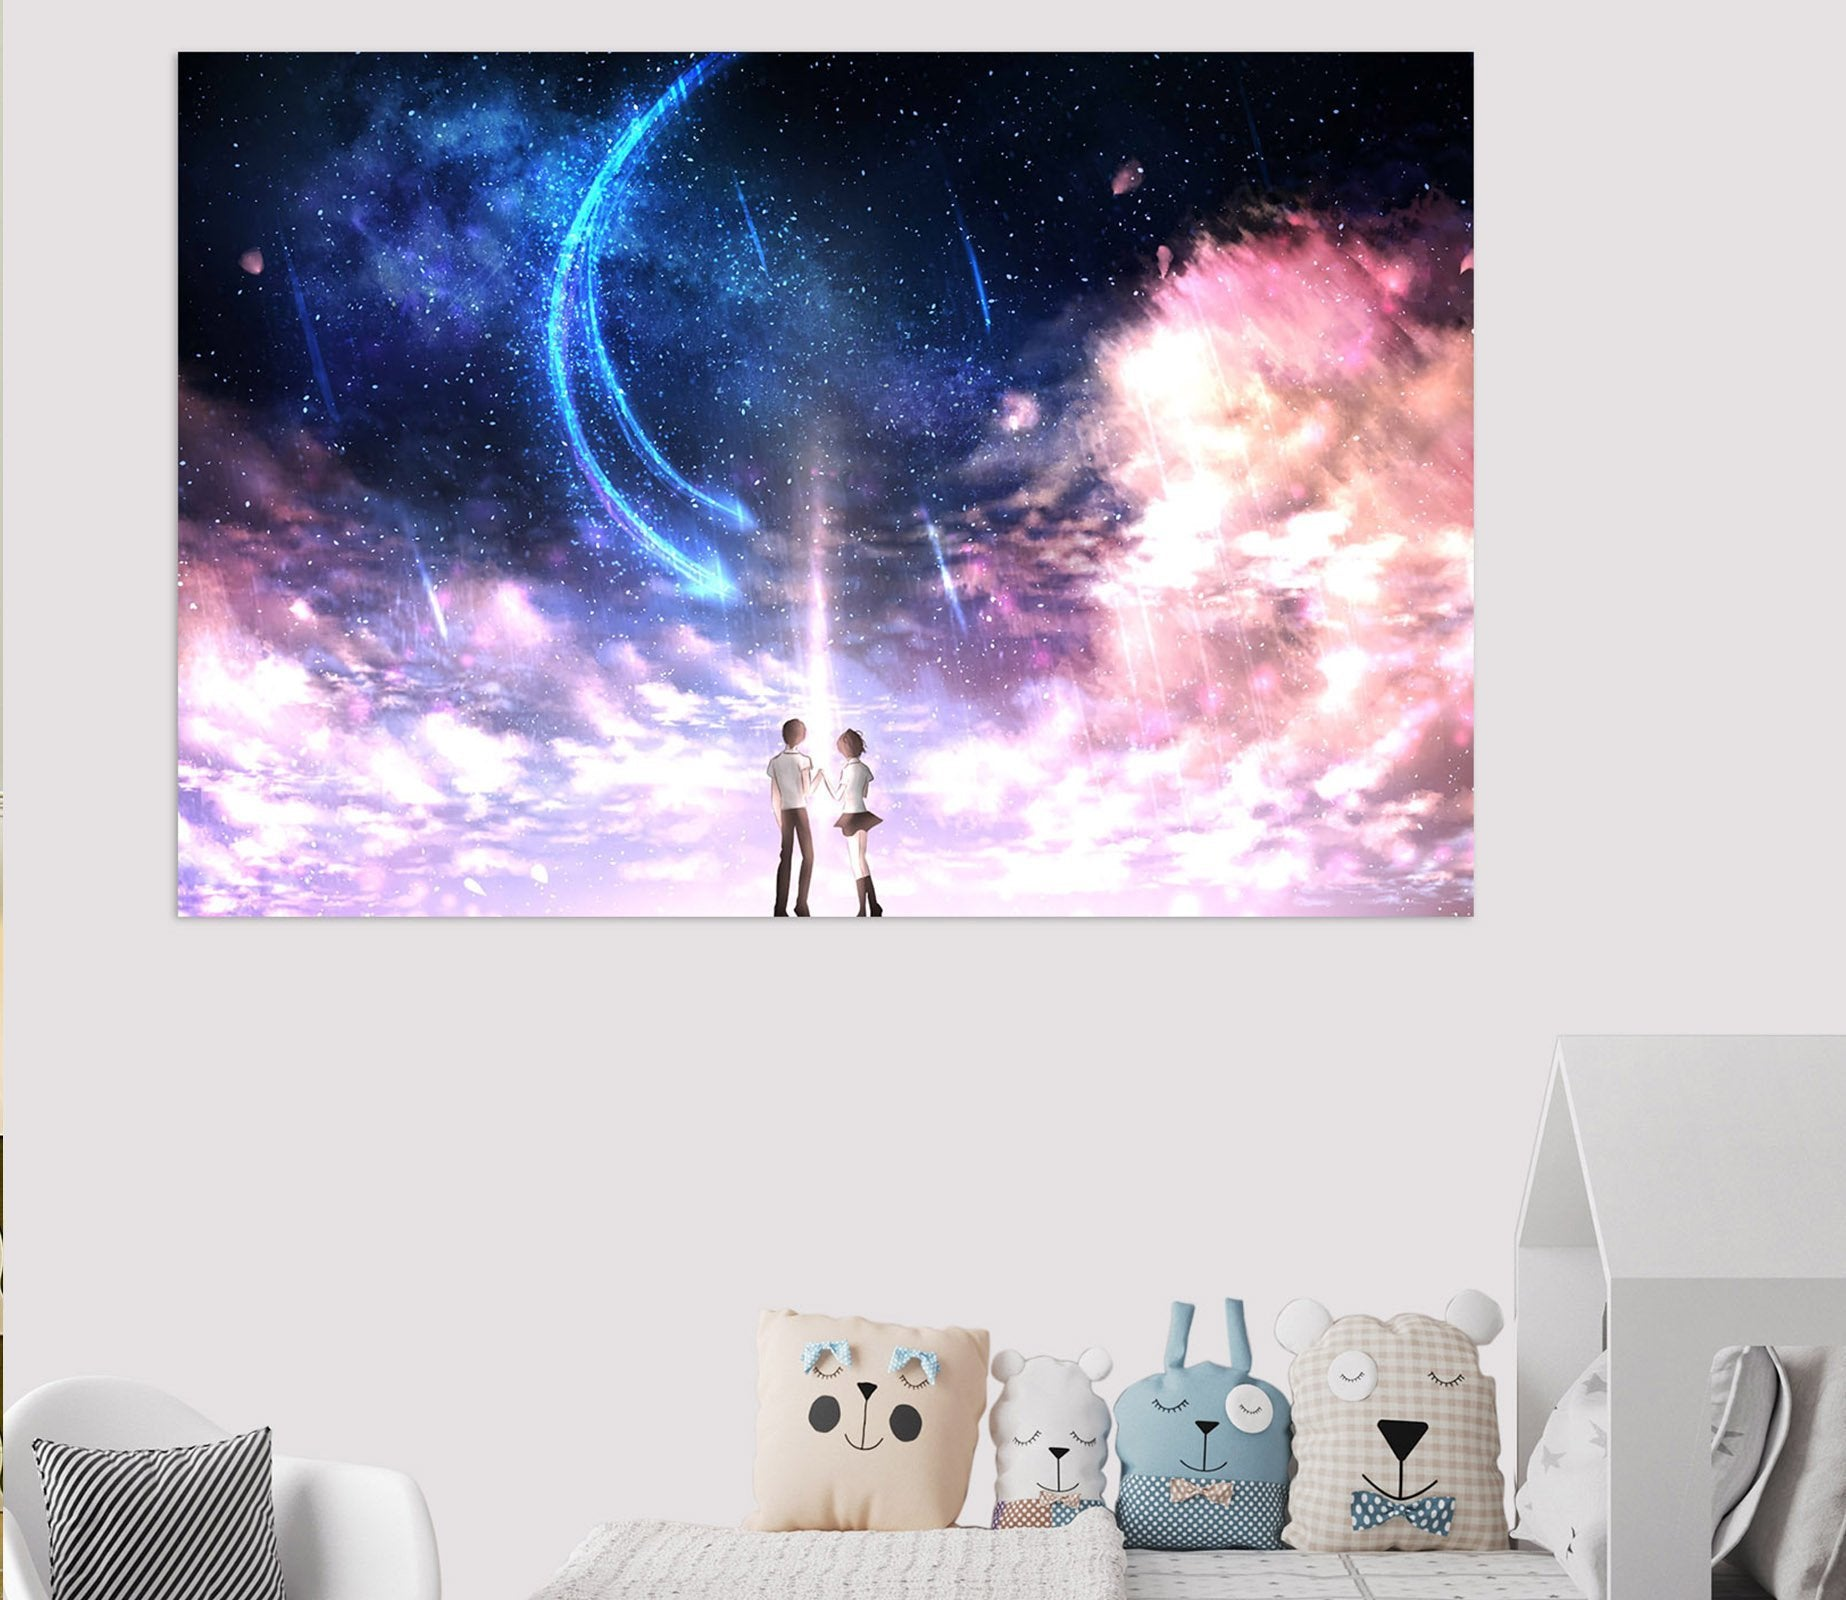 3D Your Name 994 Anime Wall Stickers Wallpaper AJ Wallpaper 2